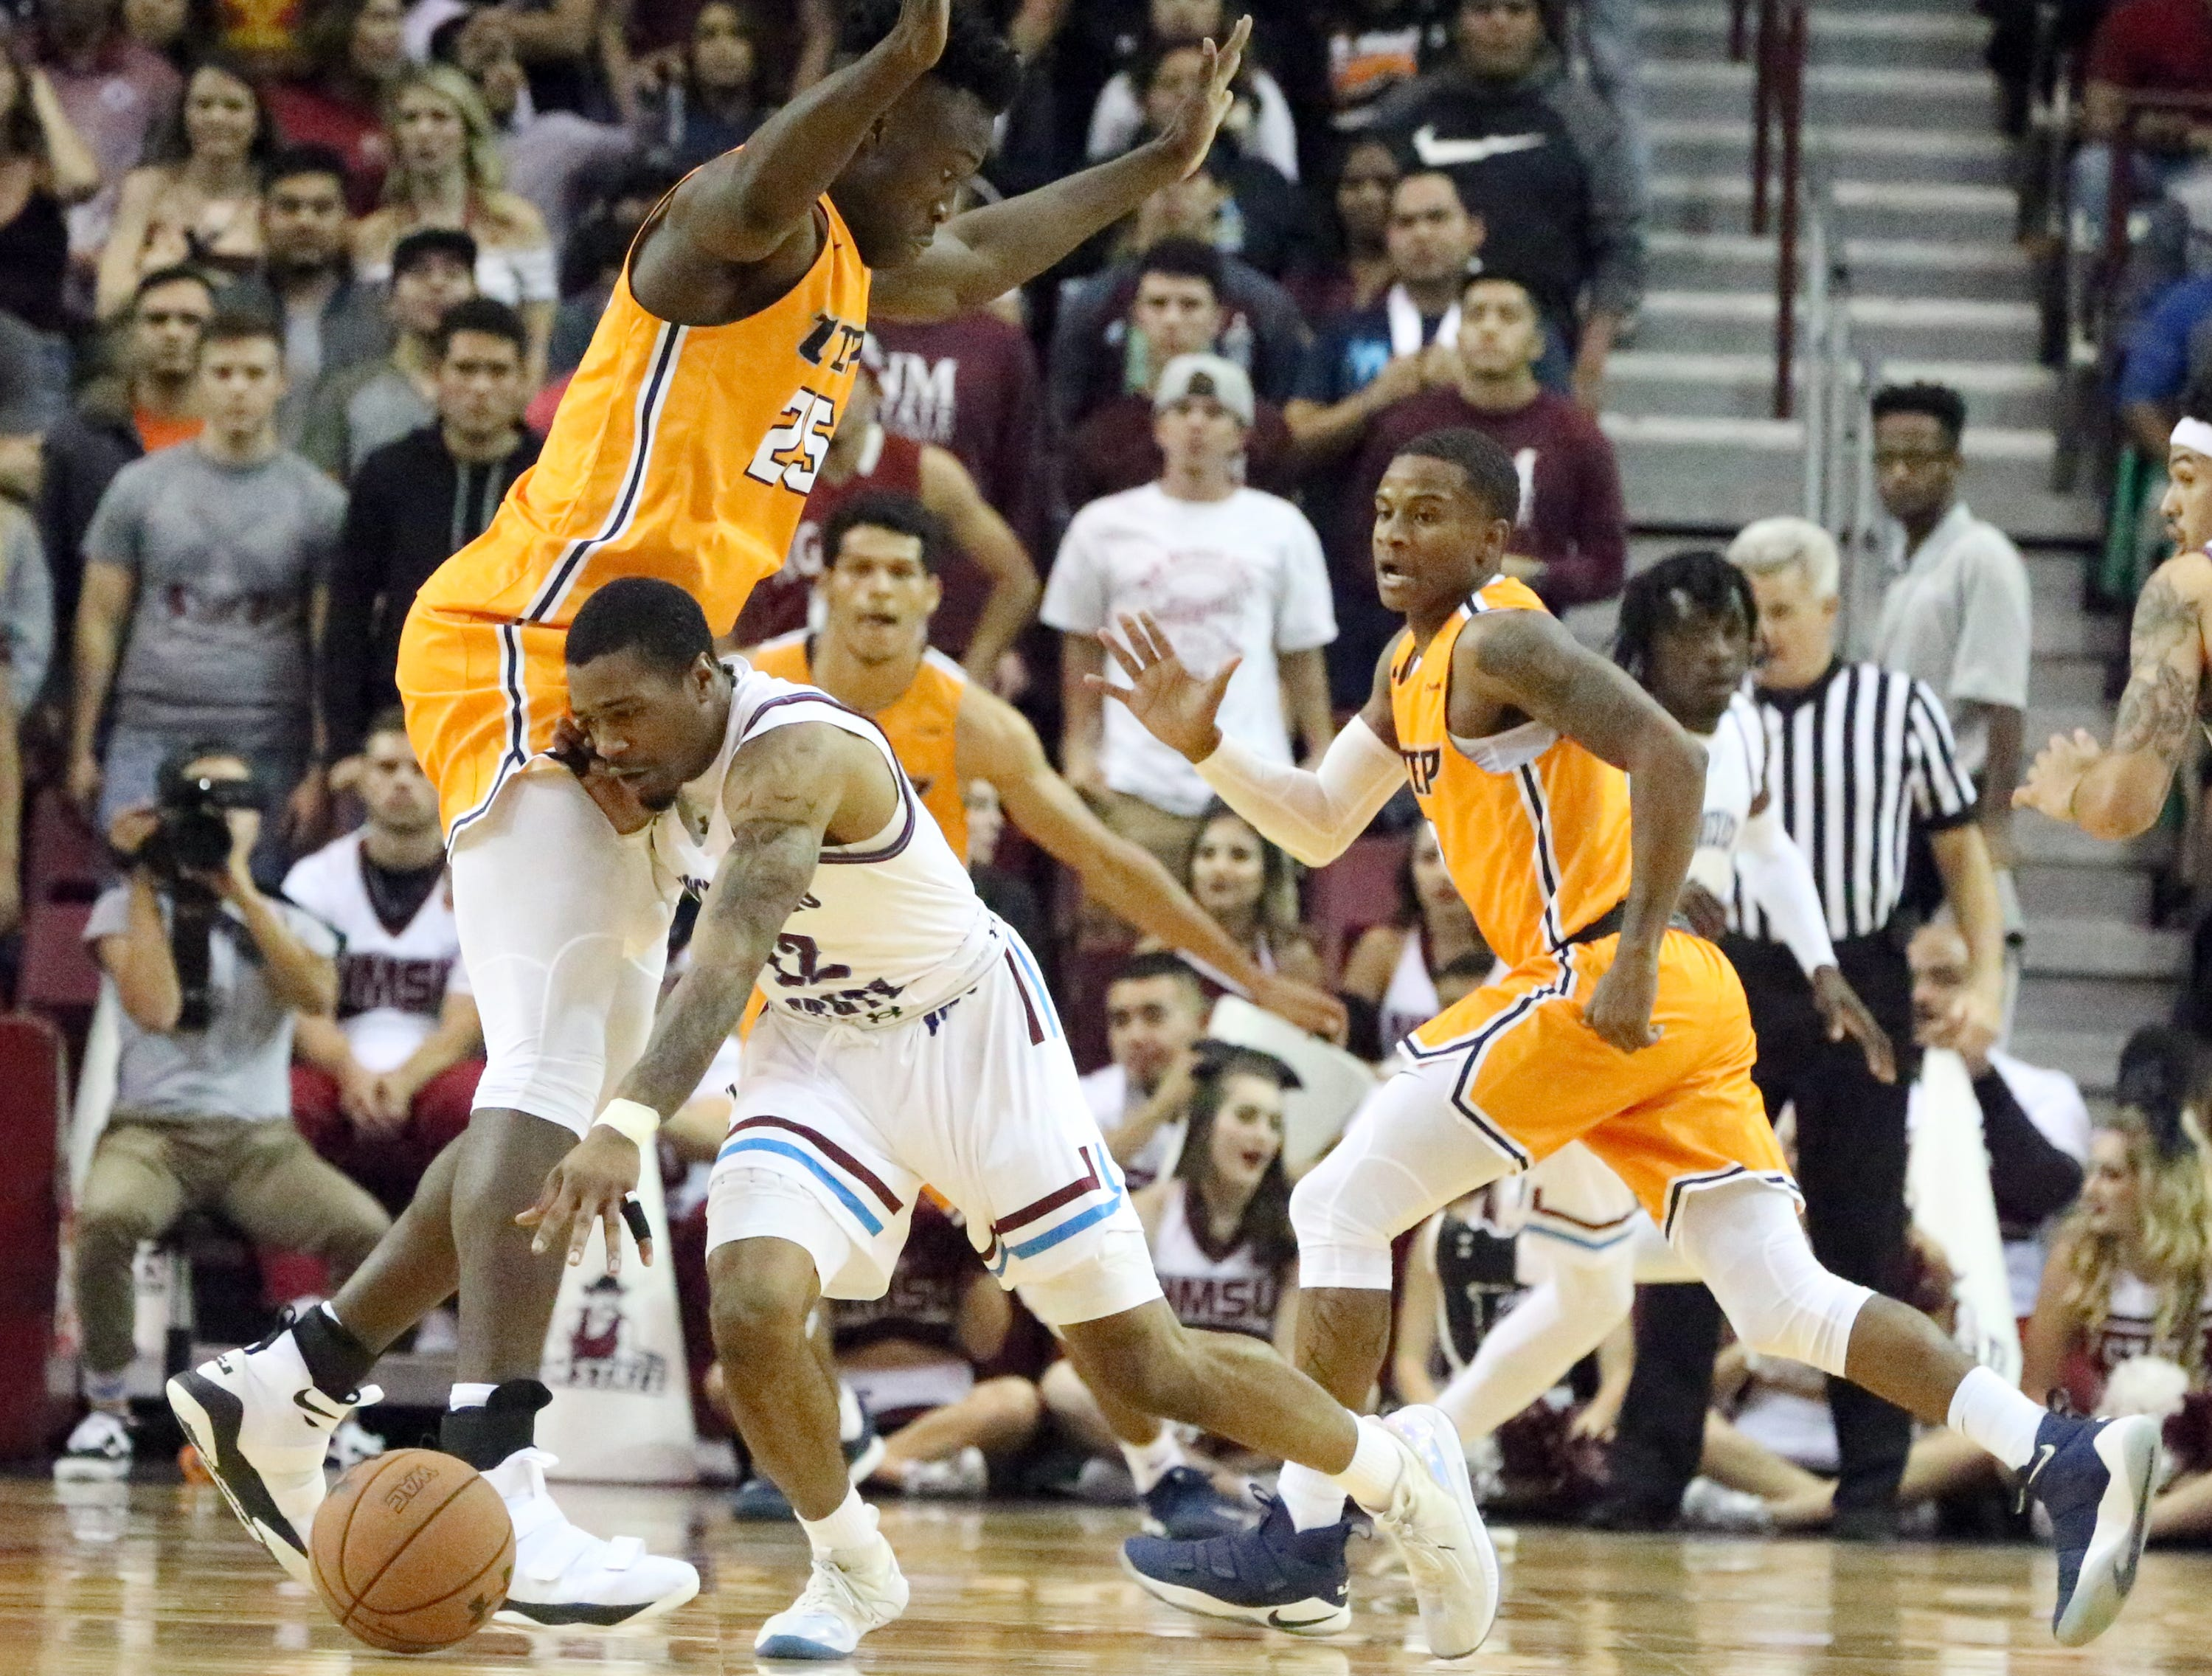 AJ Harris, 12, of NMSU drives into UTEP's Kaosi Ezeagu 25, of UTEP Friday night.